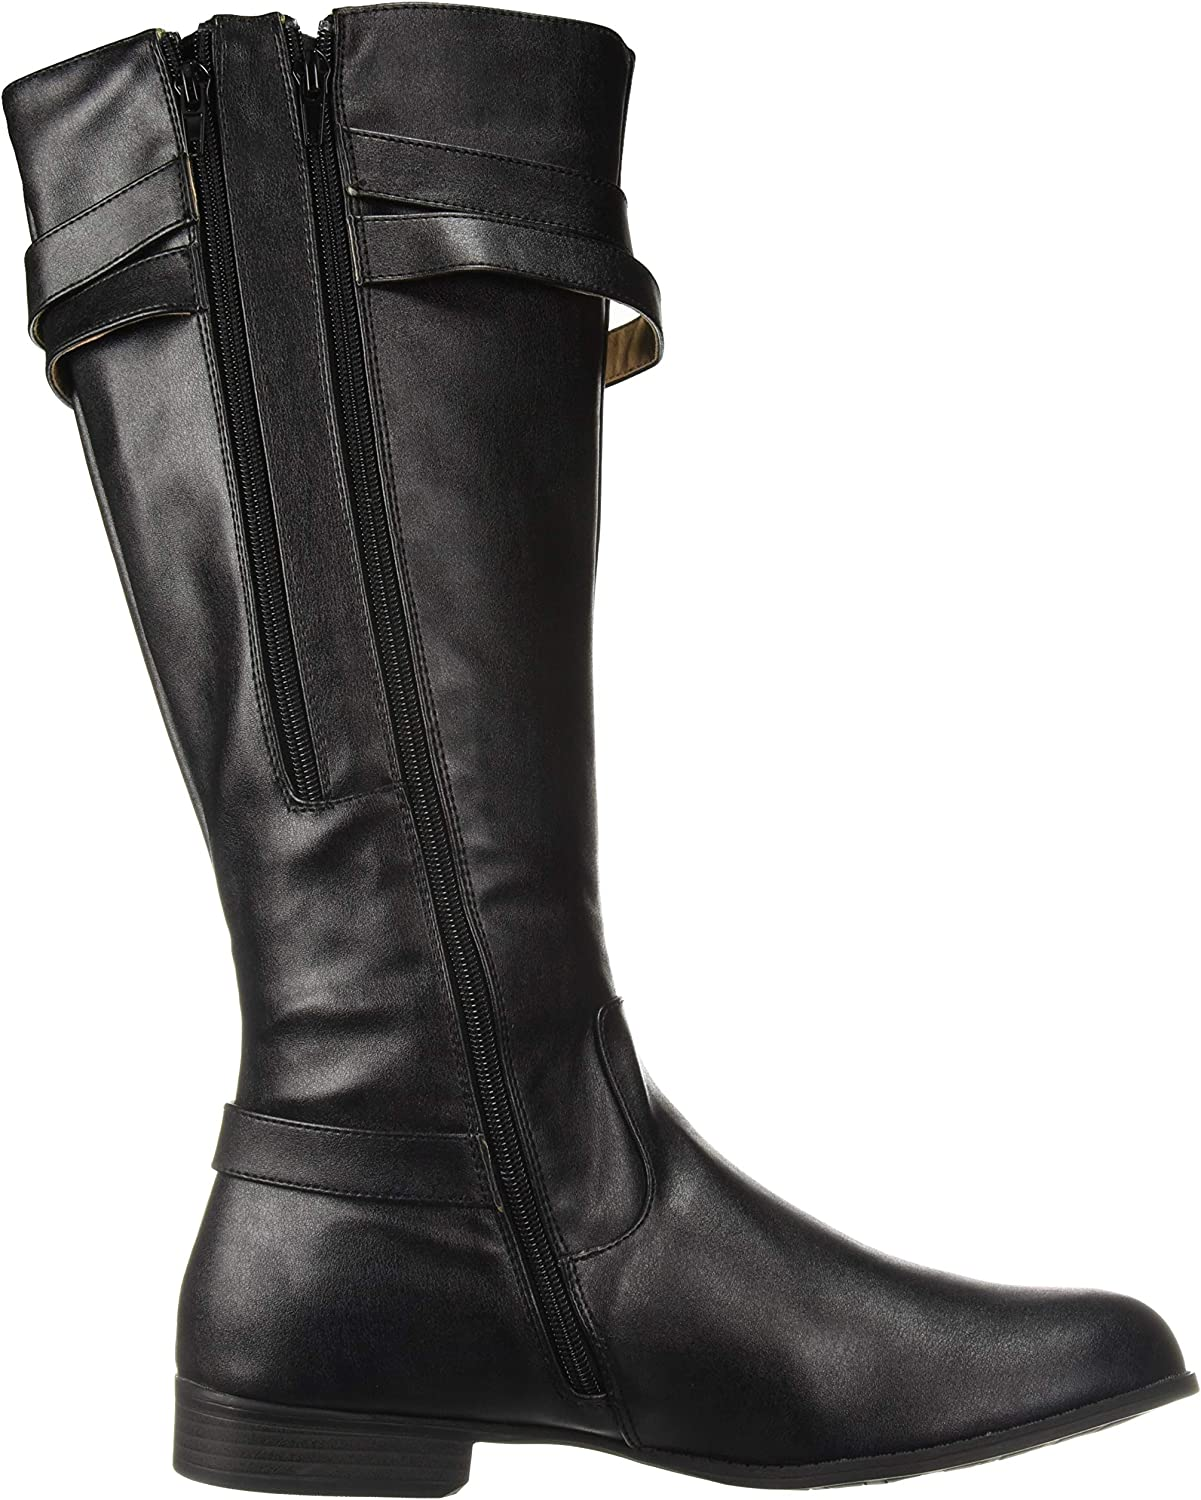 Details about  /LifeStride Women/'s X-Felicity Low Heel Tall Shaft Boot Grey Select Size